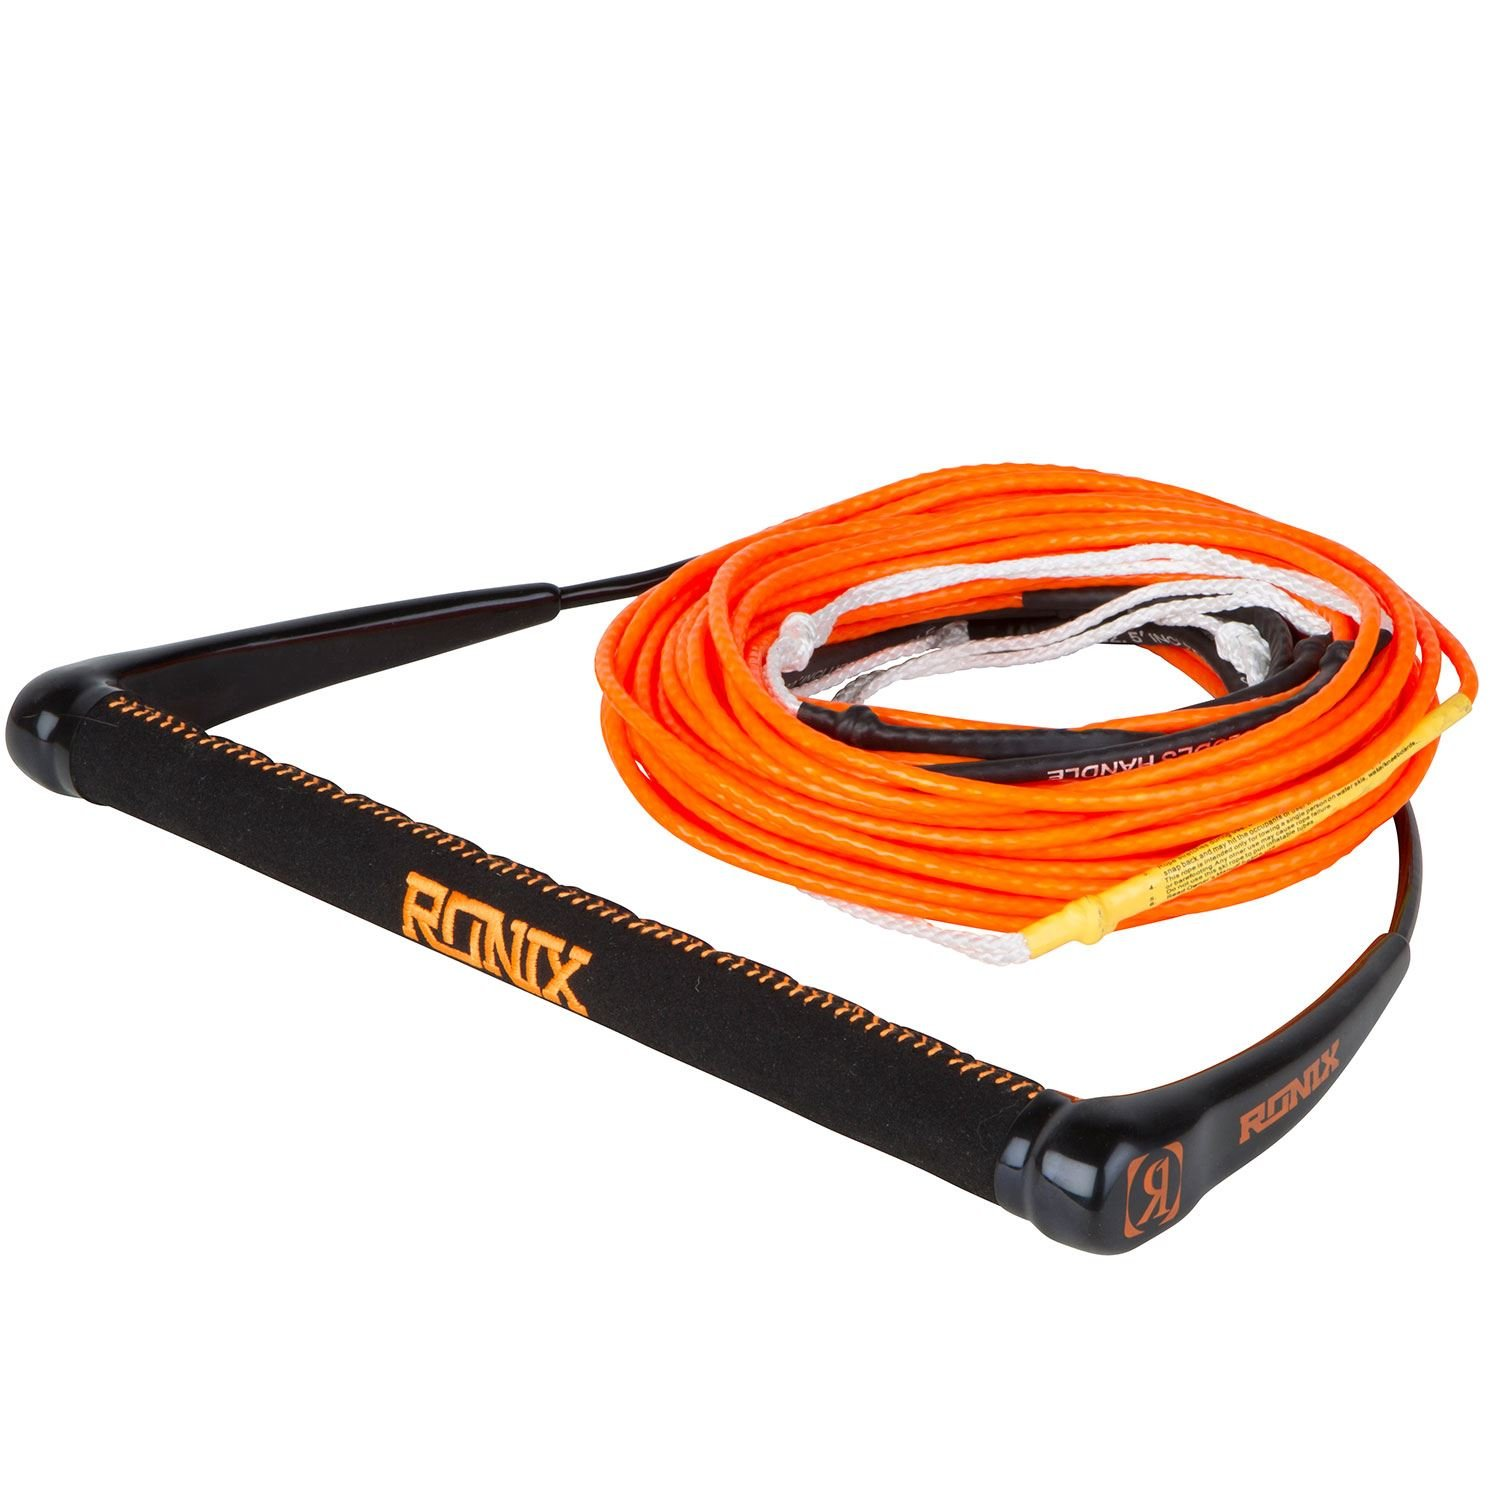 Ronix Combo 5.0 Dyneema Bar Lock Hide Stitch Grip w 80' 6-Sect. R8 Rope (Assorted) Wakeboard Rope Handle